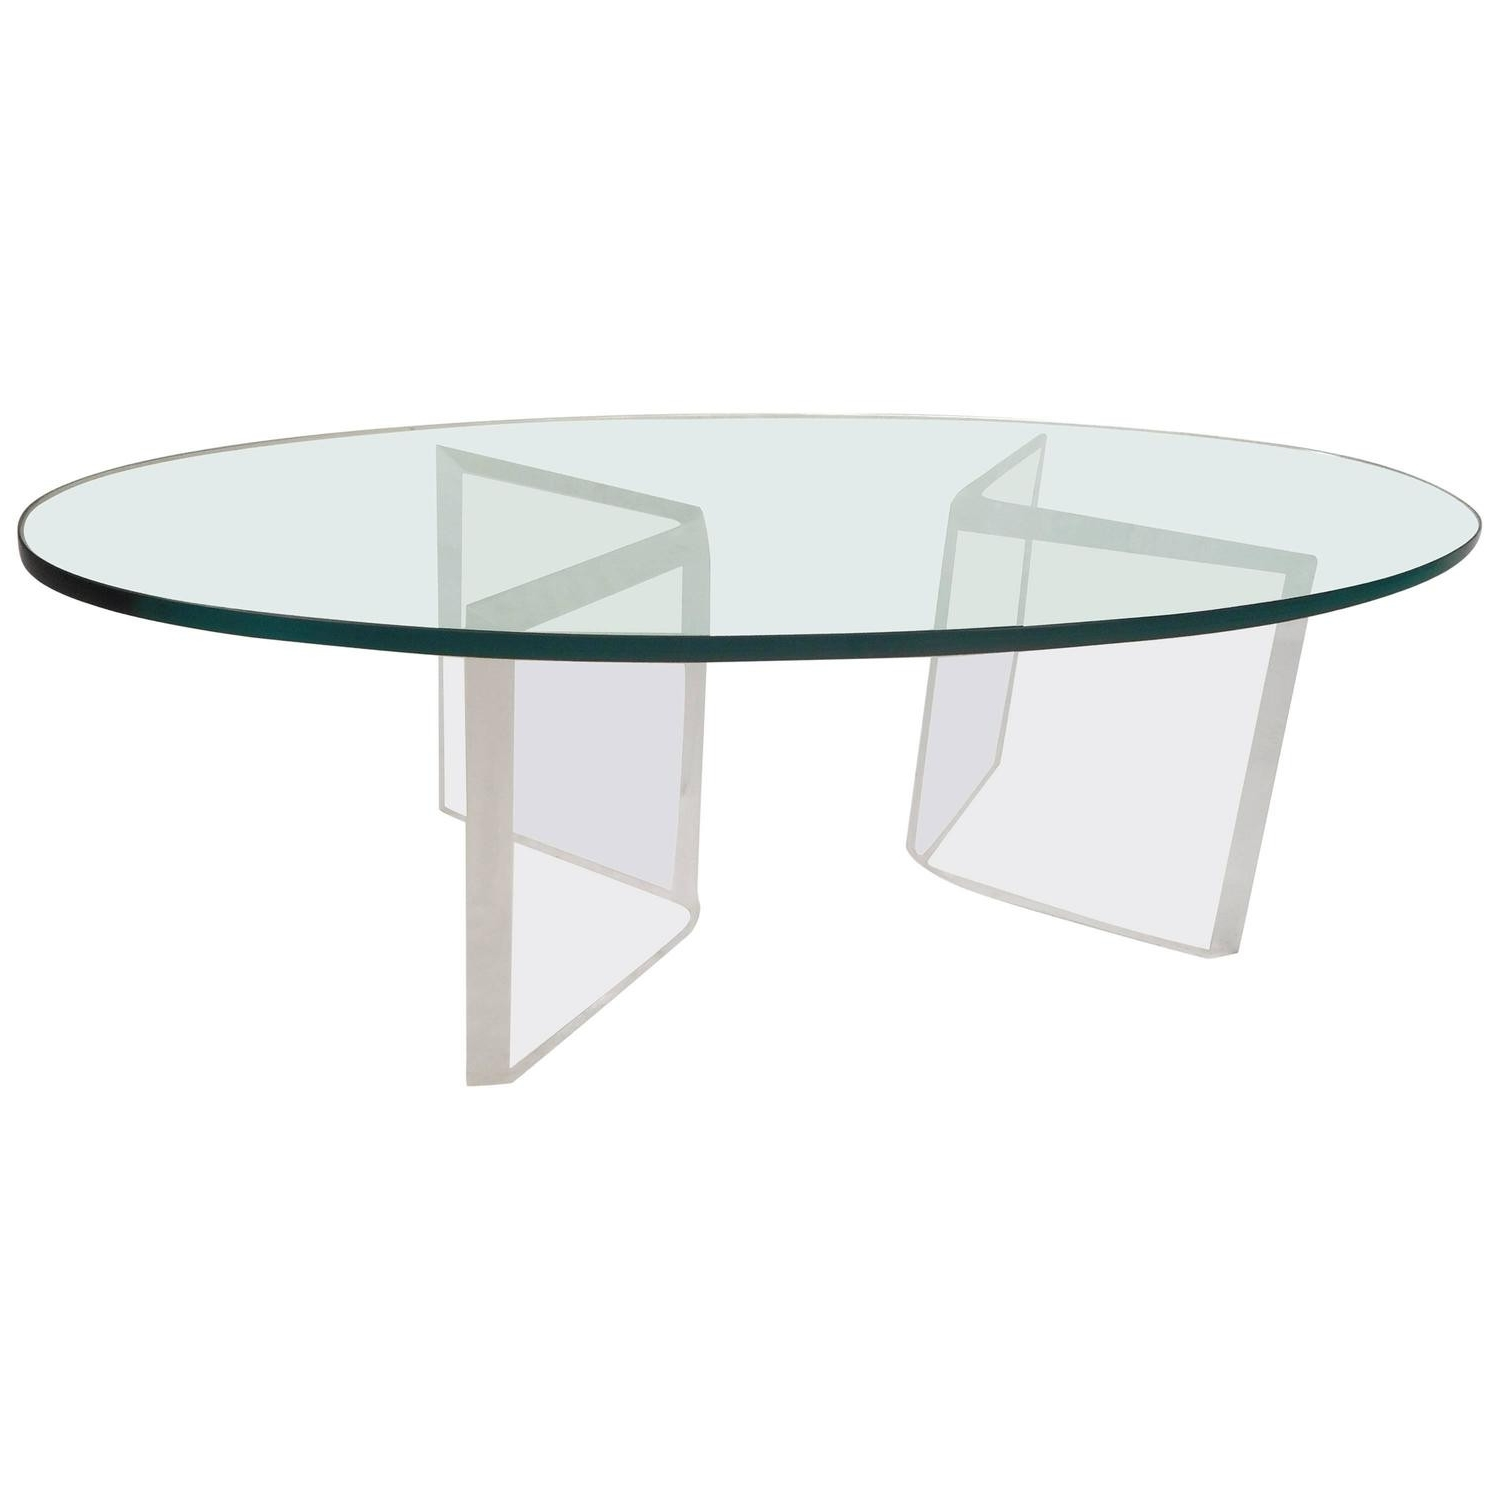 Fashionable Modern Acrylic Coffee Tables With Regard To Acrylic Coffee Table For Sale New Mid Century Modern Occasional (View 7 of 20)